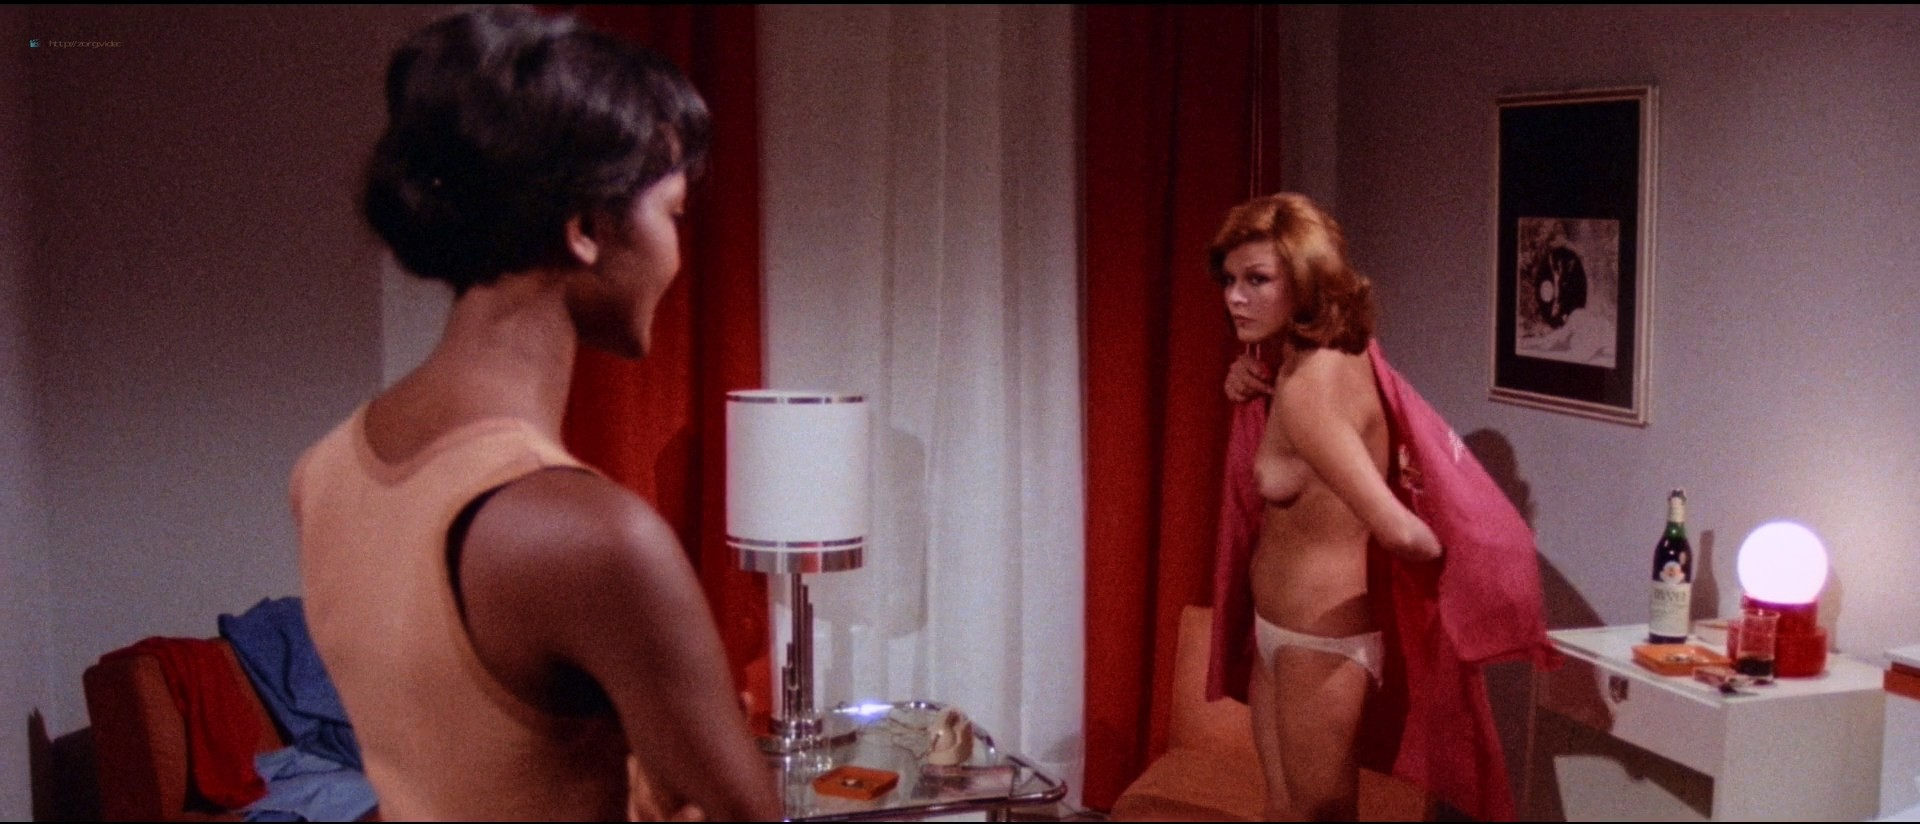 Martine Brochard nude Mirta Miller, Ines Pellegrini nude too - Eyeball (IT-1975) 1080p BluRay (14)